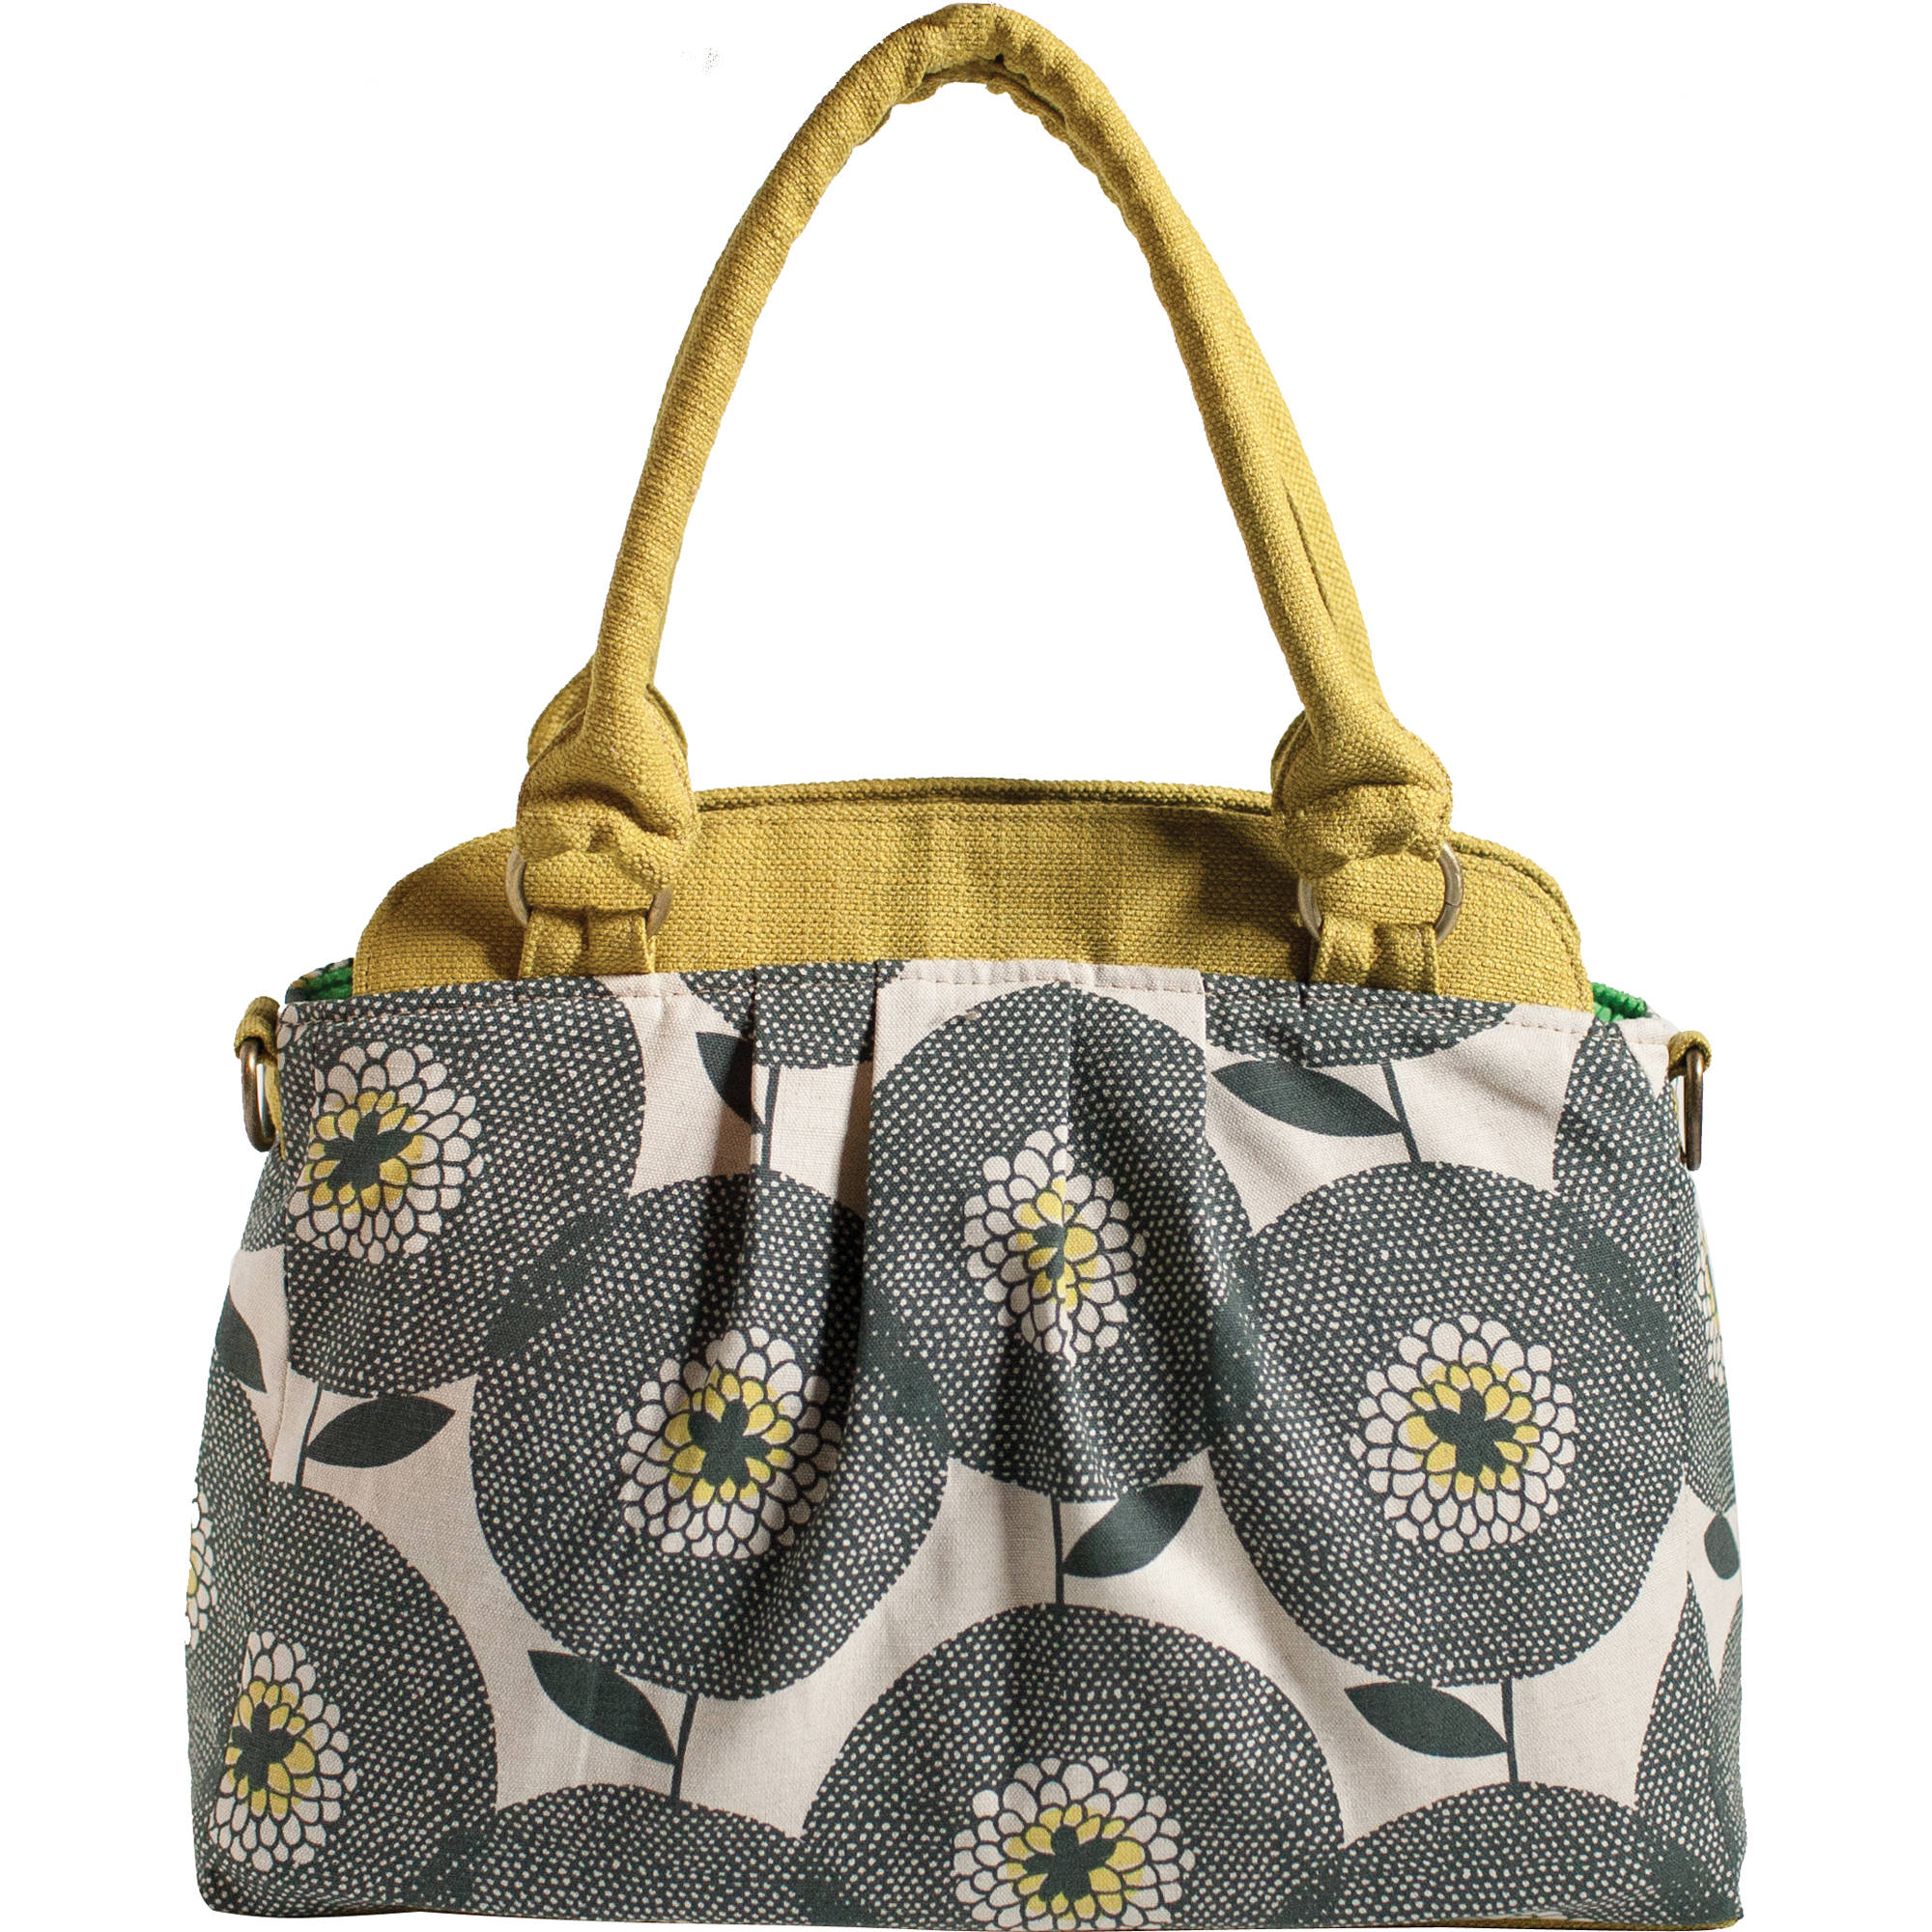 Ketti Handbags Penny Mum Camera Bag Fl Print